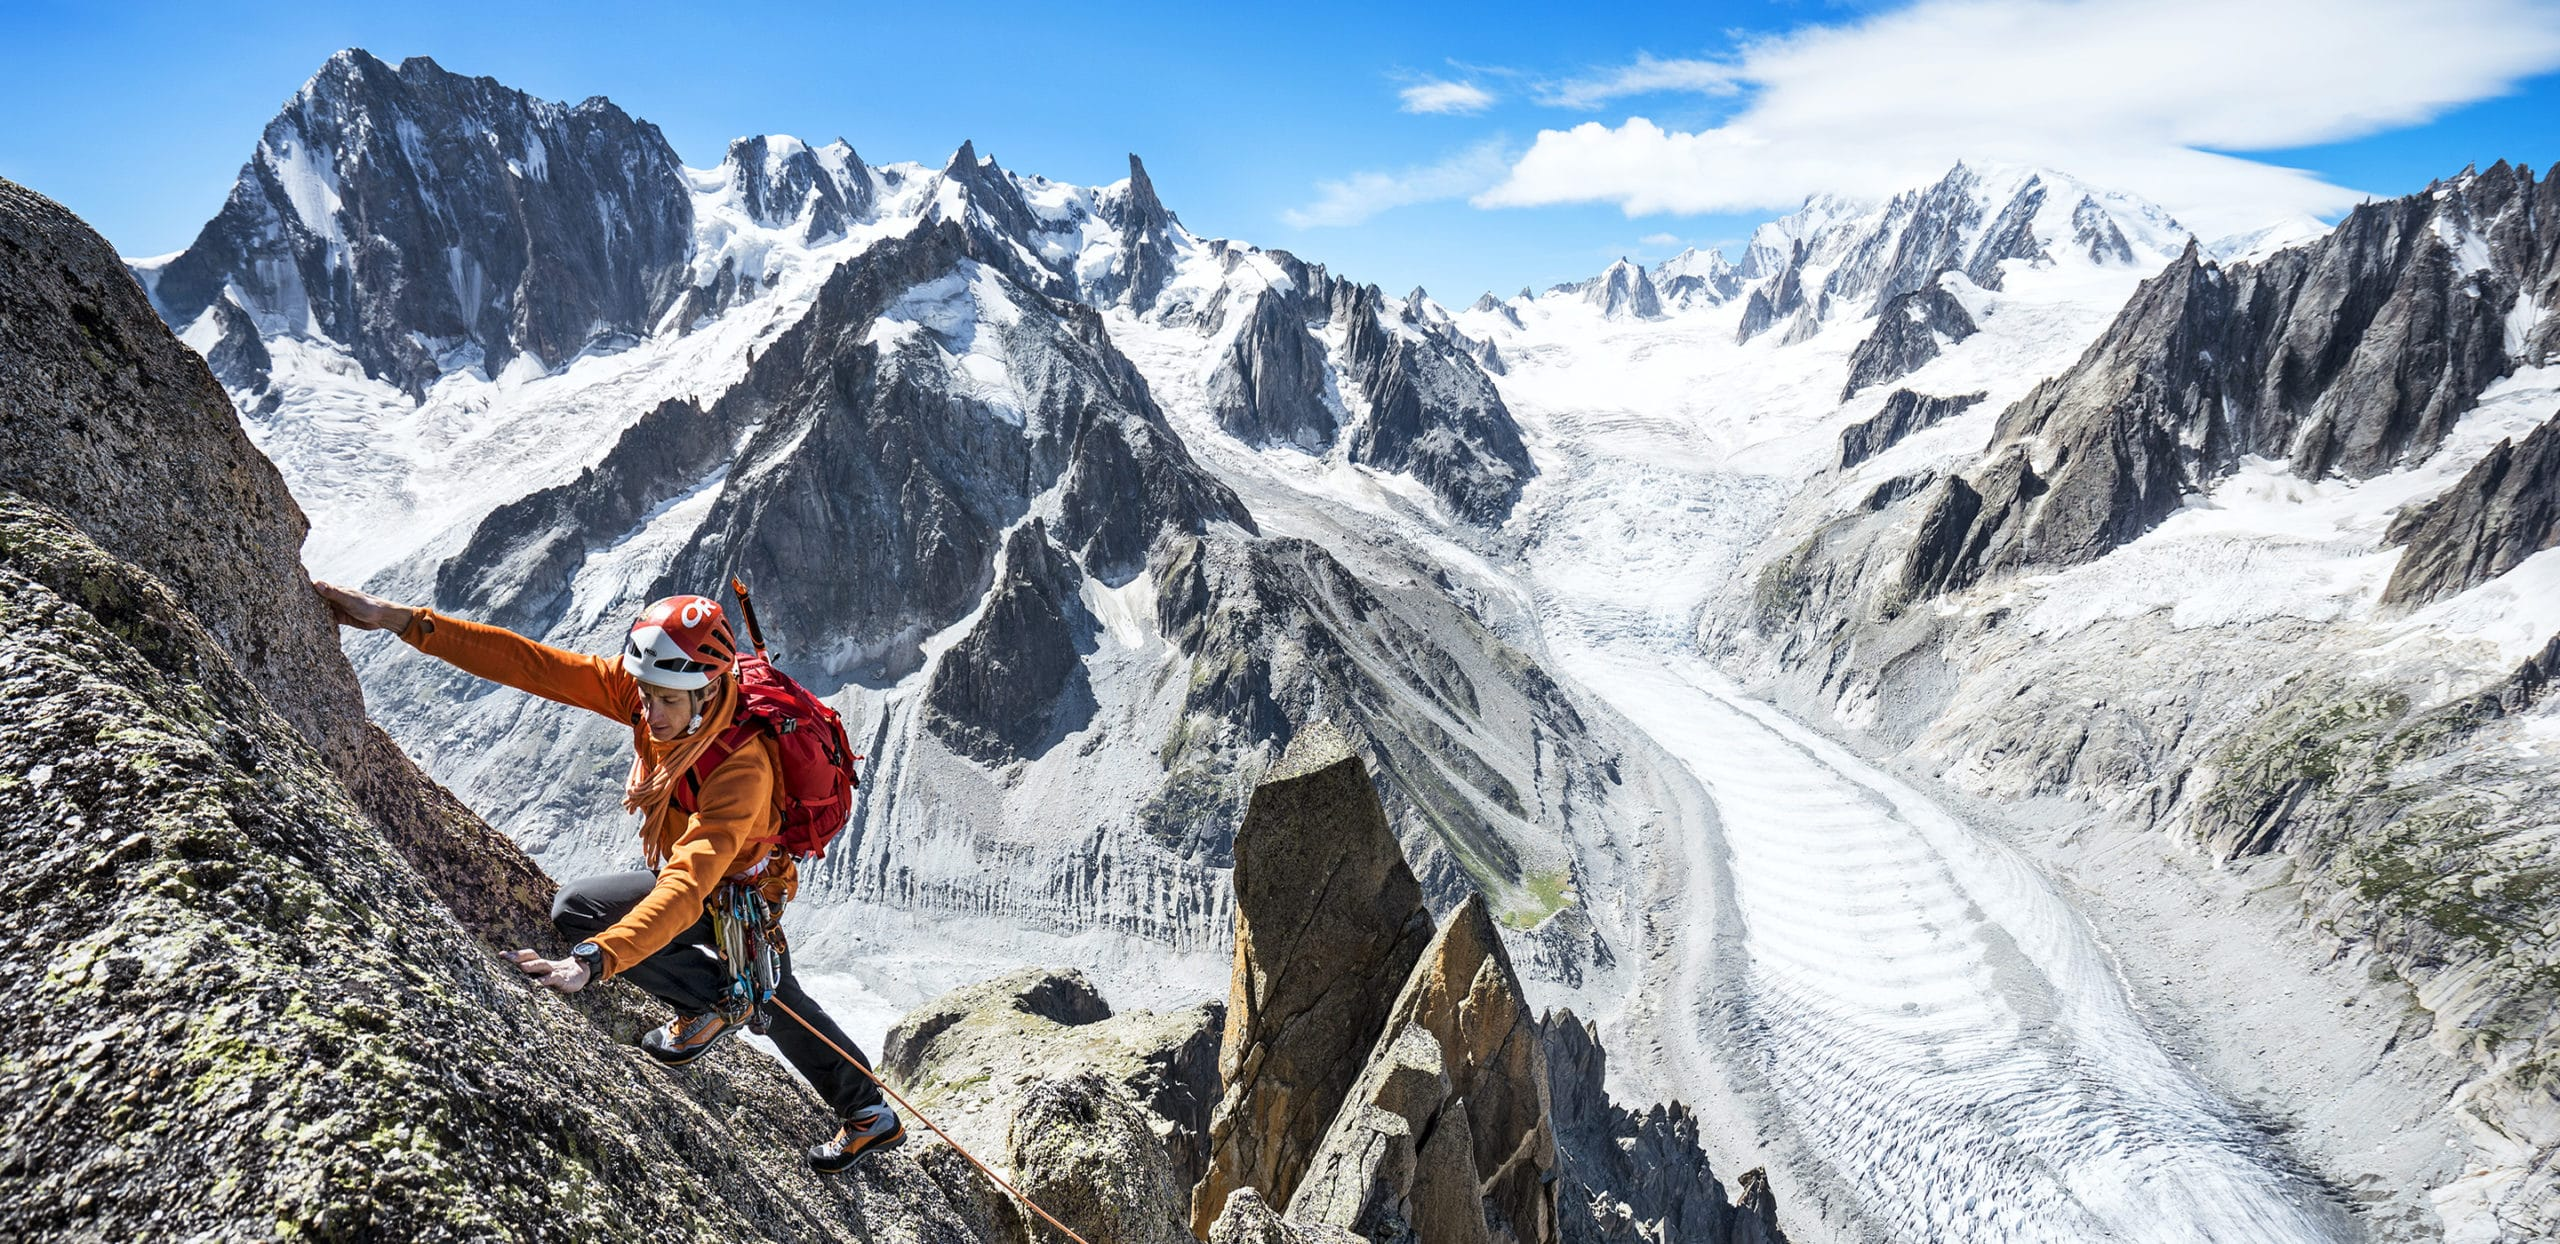 Alpine climbing & information and education for the Alps